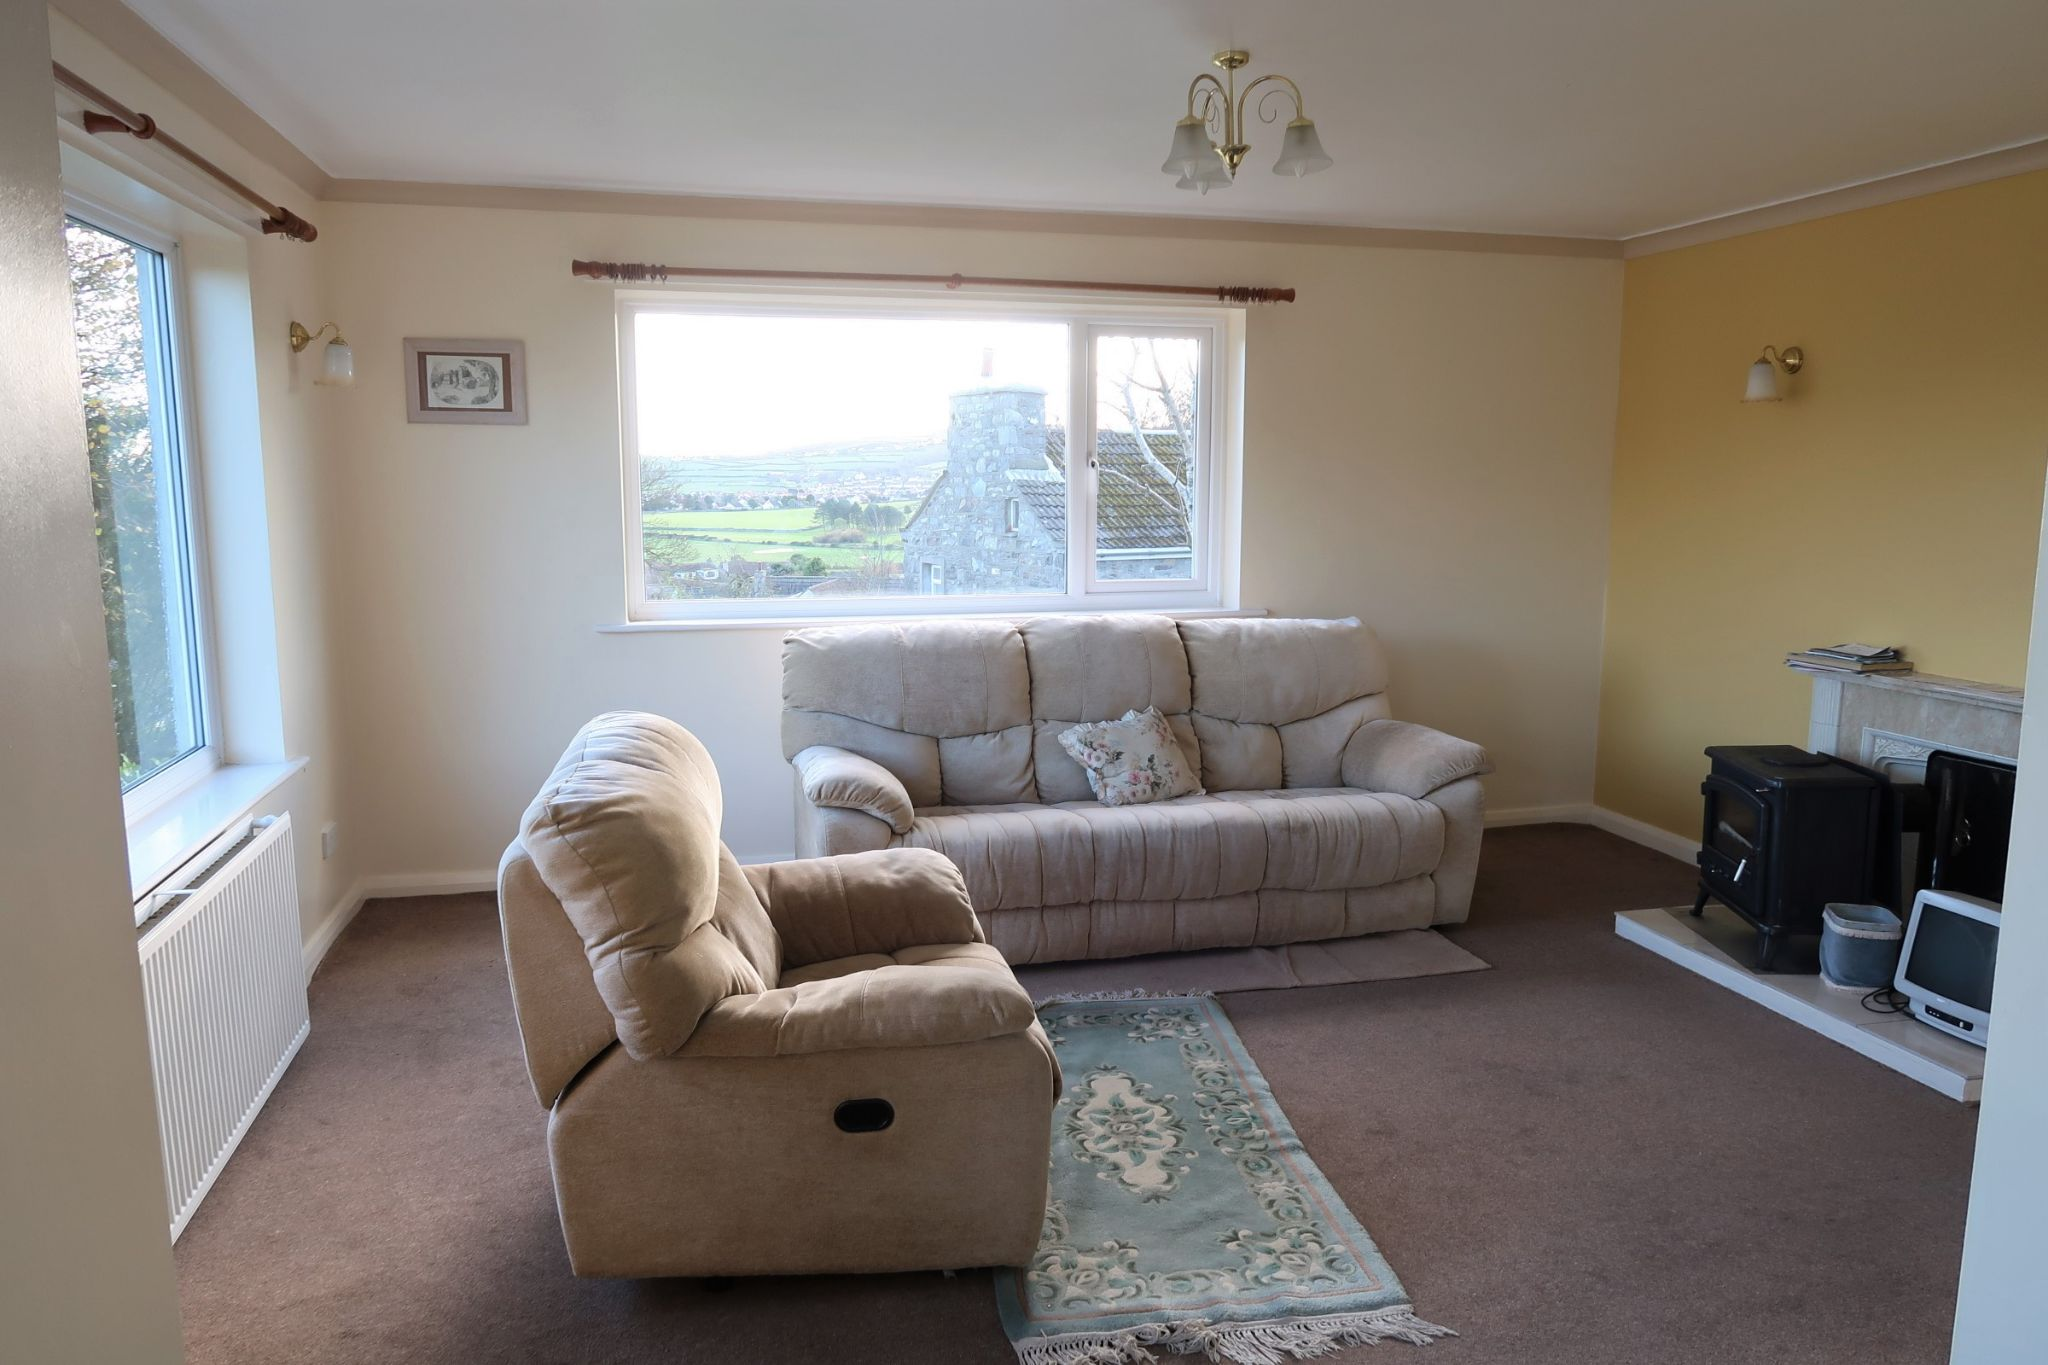 4 bedroom detached bungalow SSTC in Surby,port Erin - Property photograph